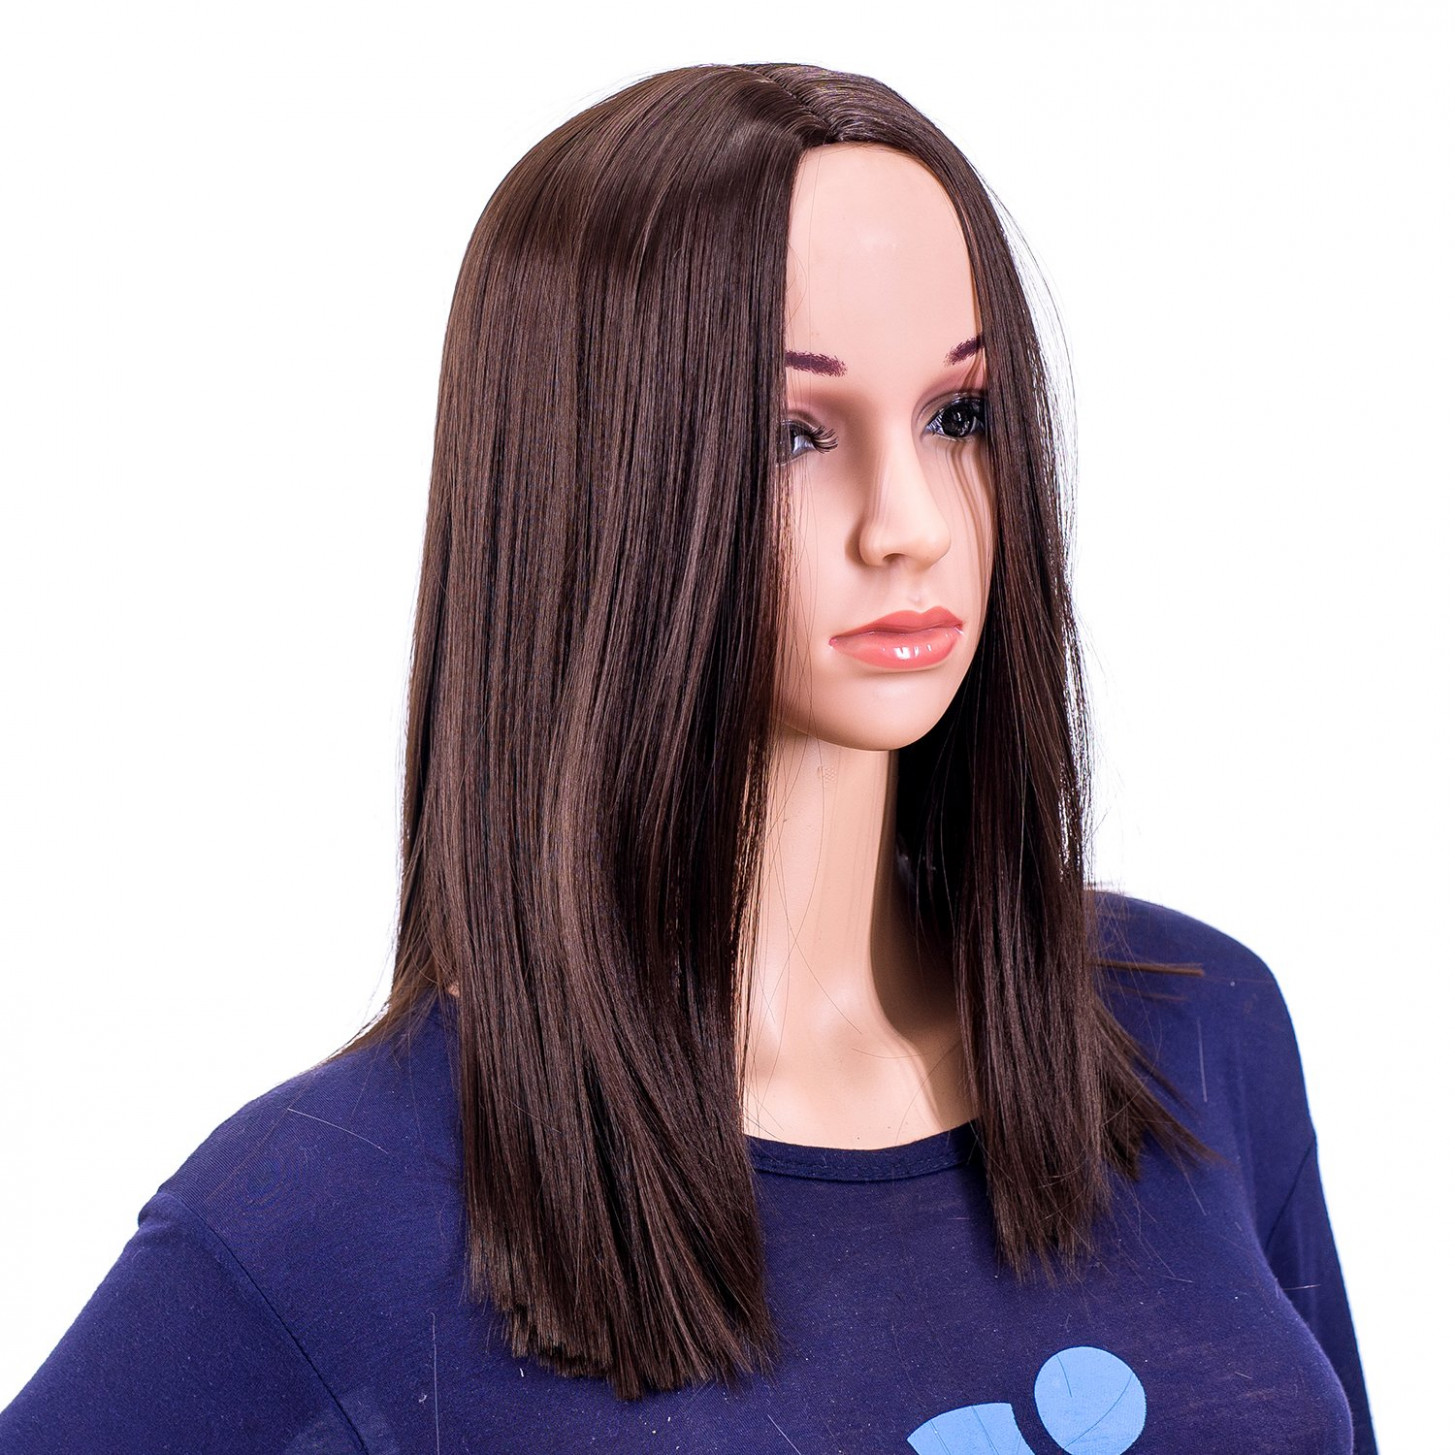 SWACC 11-Inch Short Straight Middle Part Hair Wig Medium Length Synthetic  Heat Resistant Wigs for Women with Wig Cap (Dark Brown-11#)